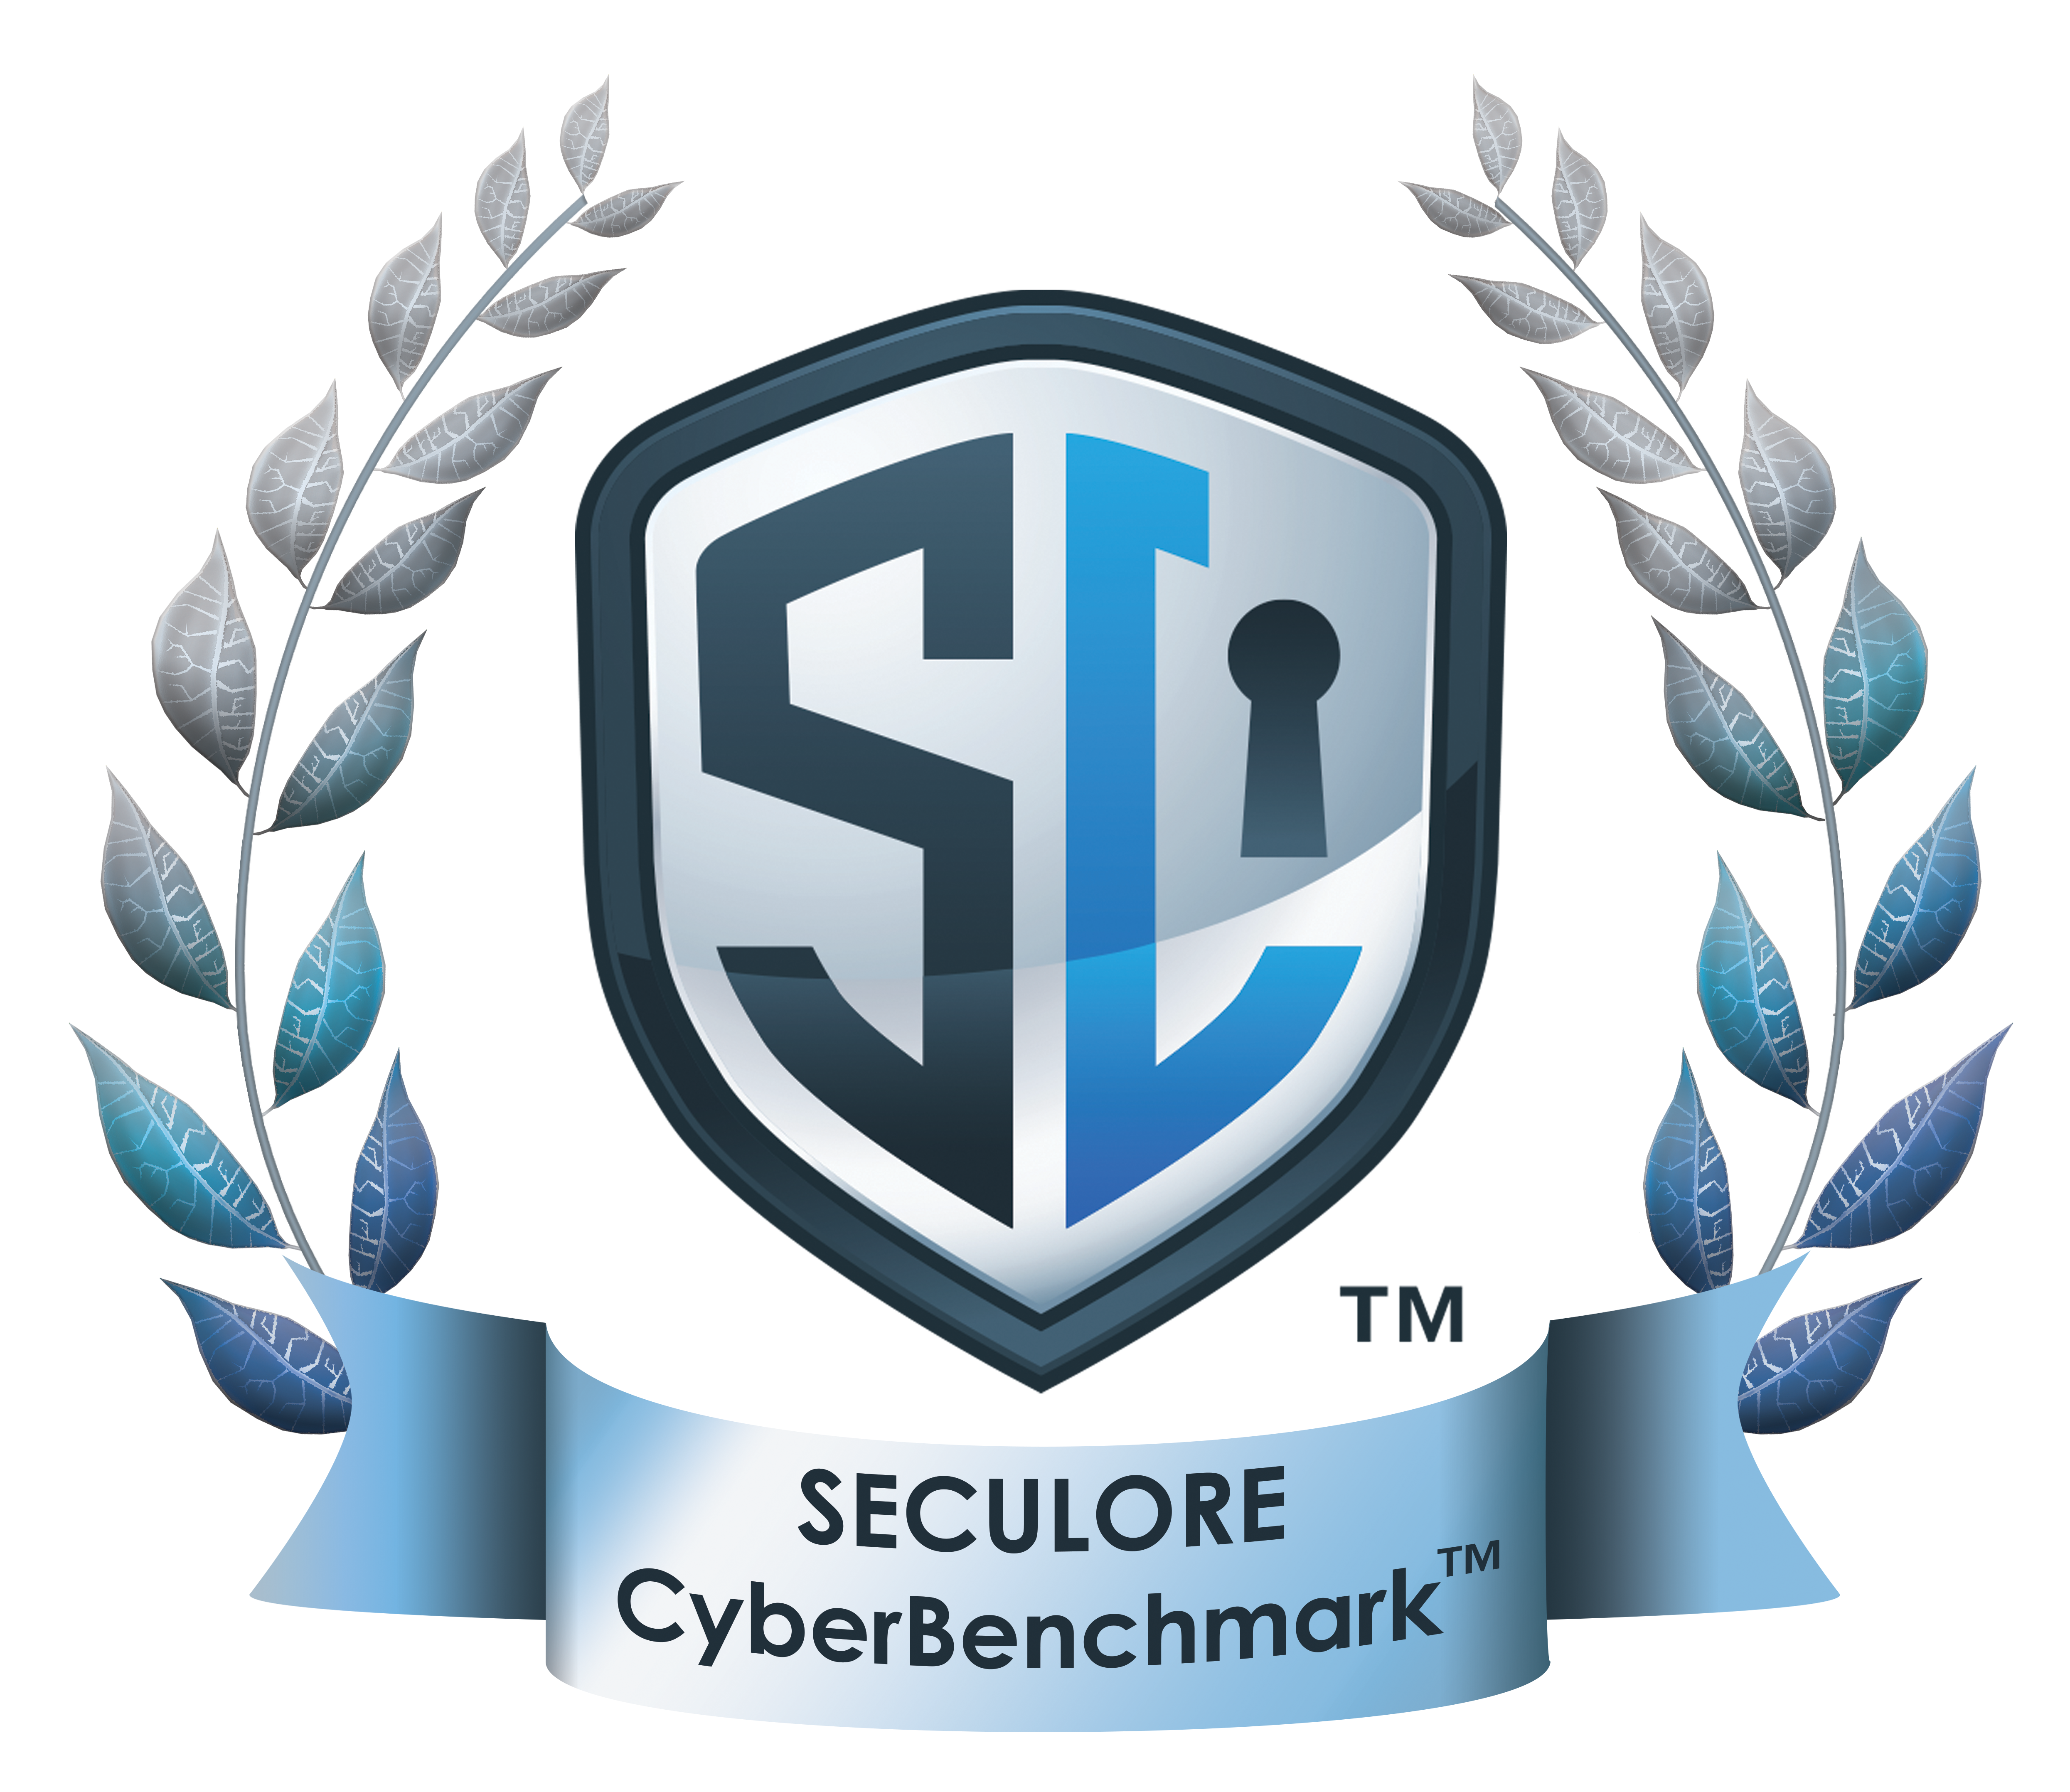 CyberBenchmark-emblem-png Cropped.png